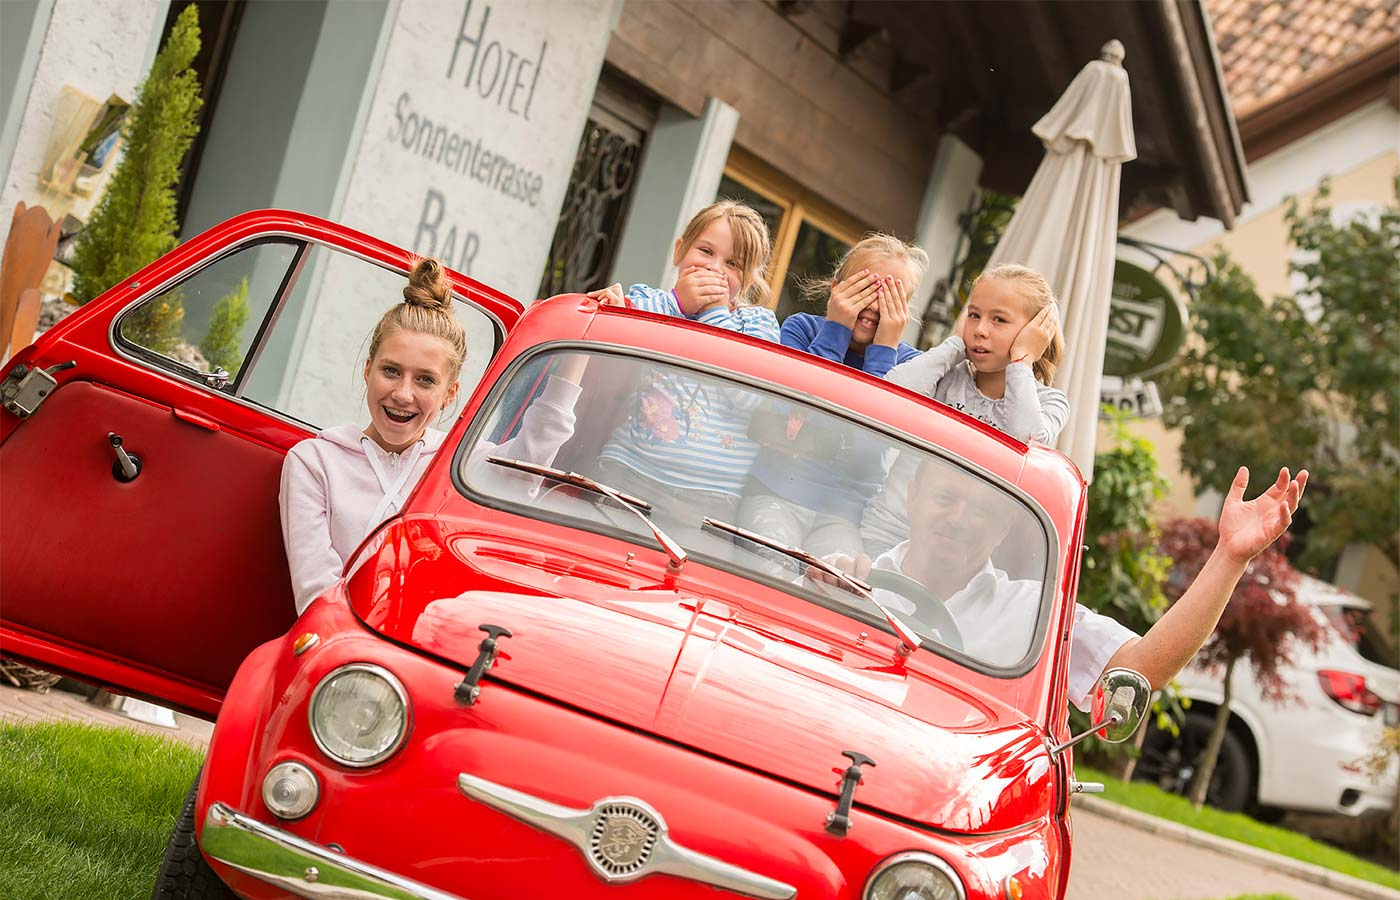 Four children in fun poses on a historic red vehicle in front of the Hotel Alpenhof in Saltusio